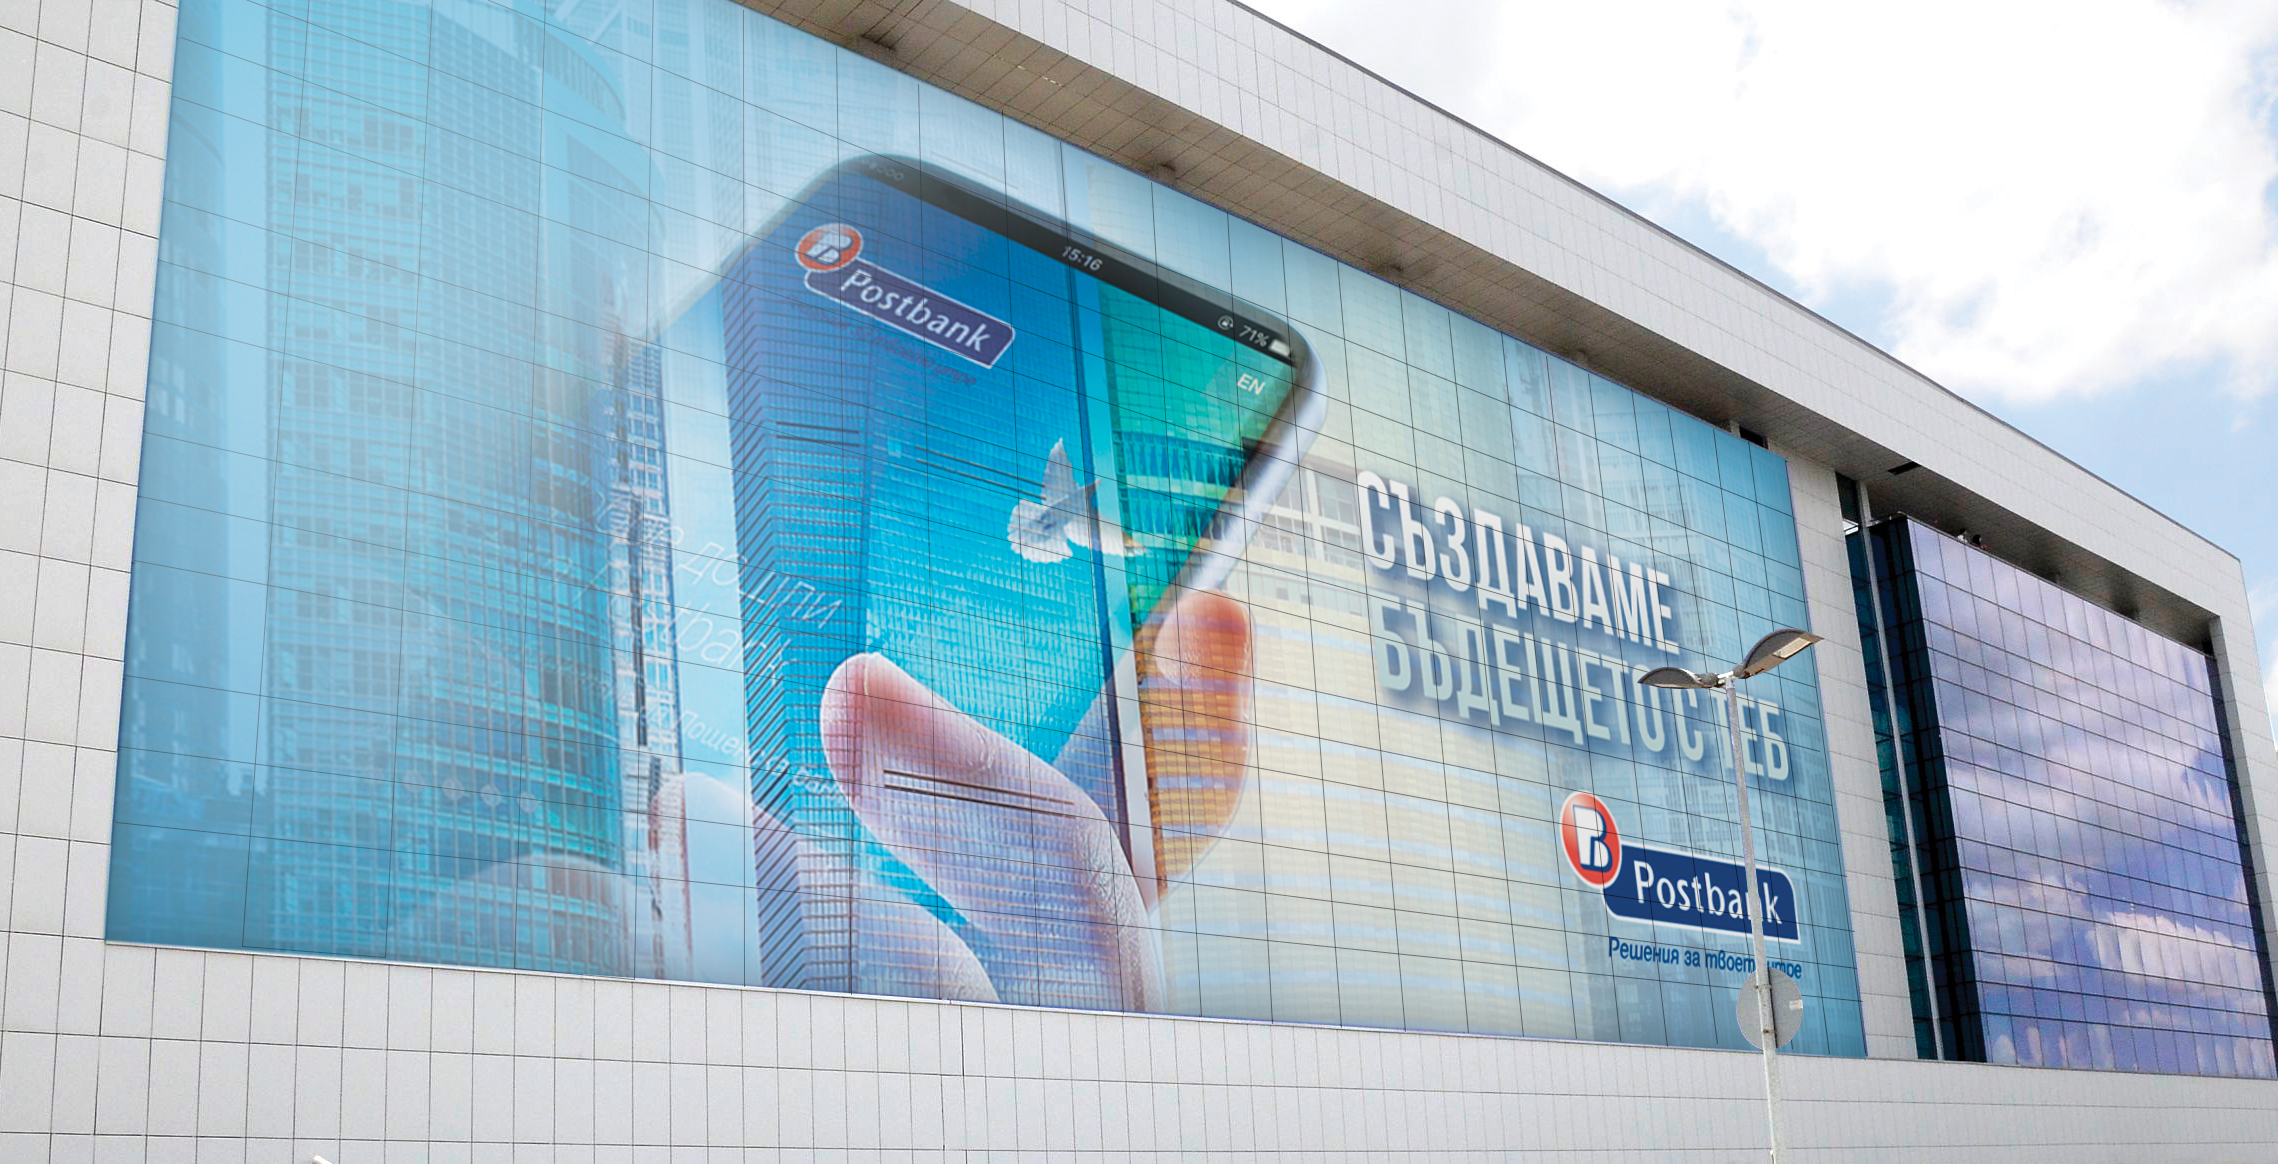 Postbank and PAC Doverie join forces in a strategic partnership to the benefit of their clients